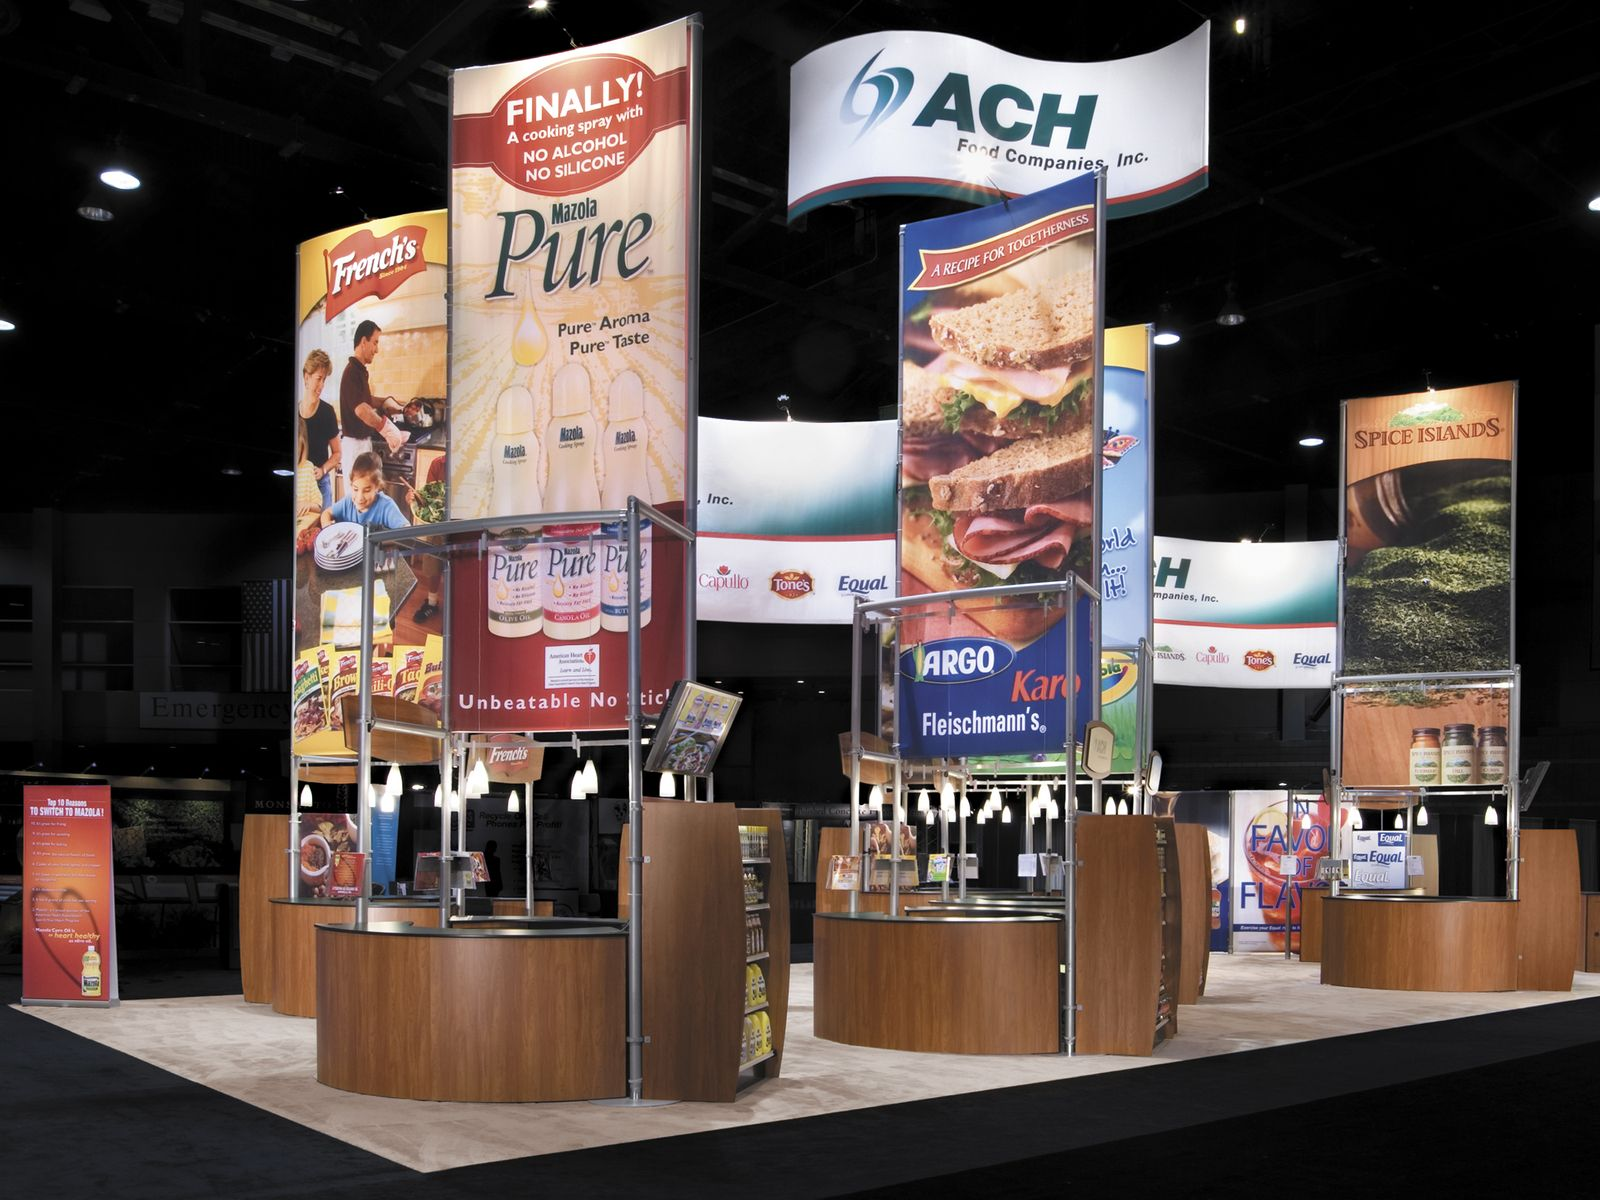 Trade Show Booth Builders : Ach trade show exhibit design display pinterest